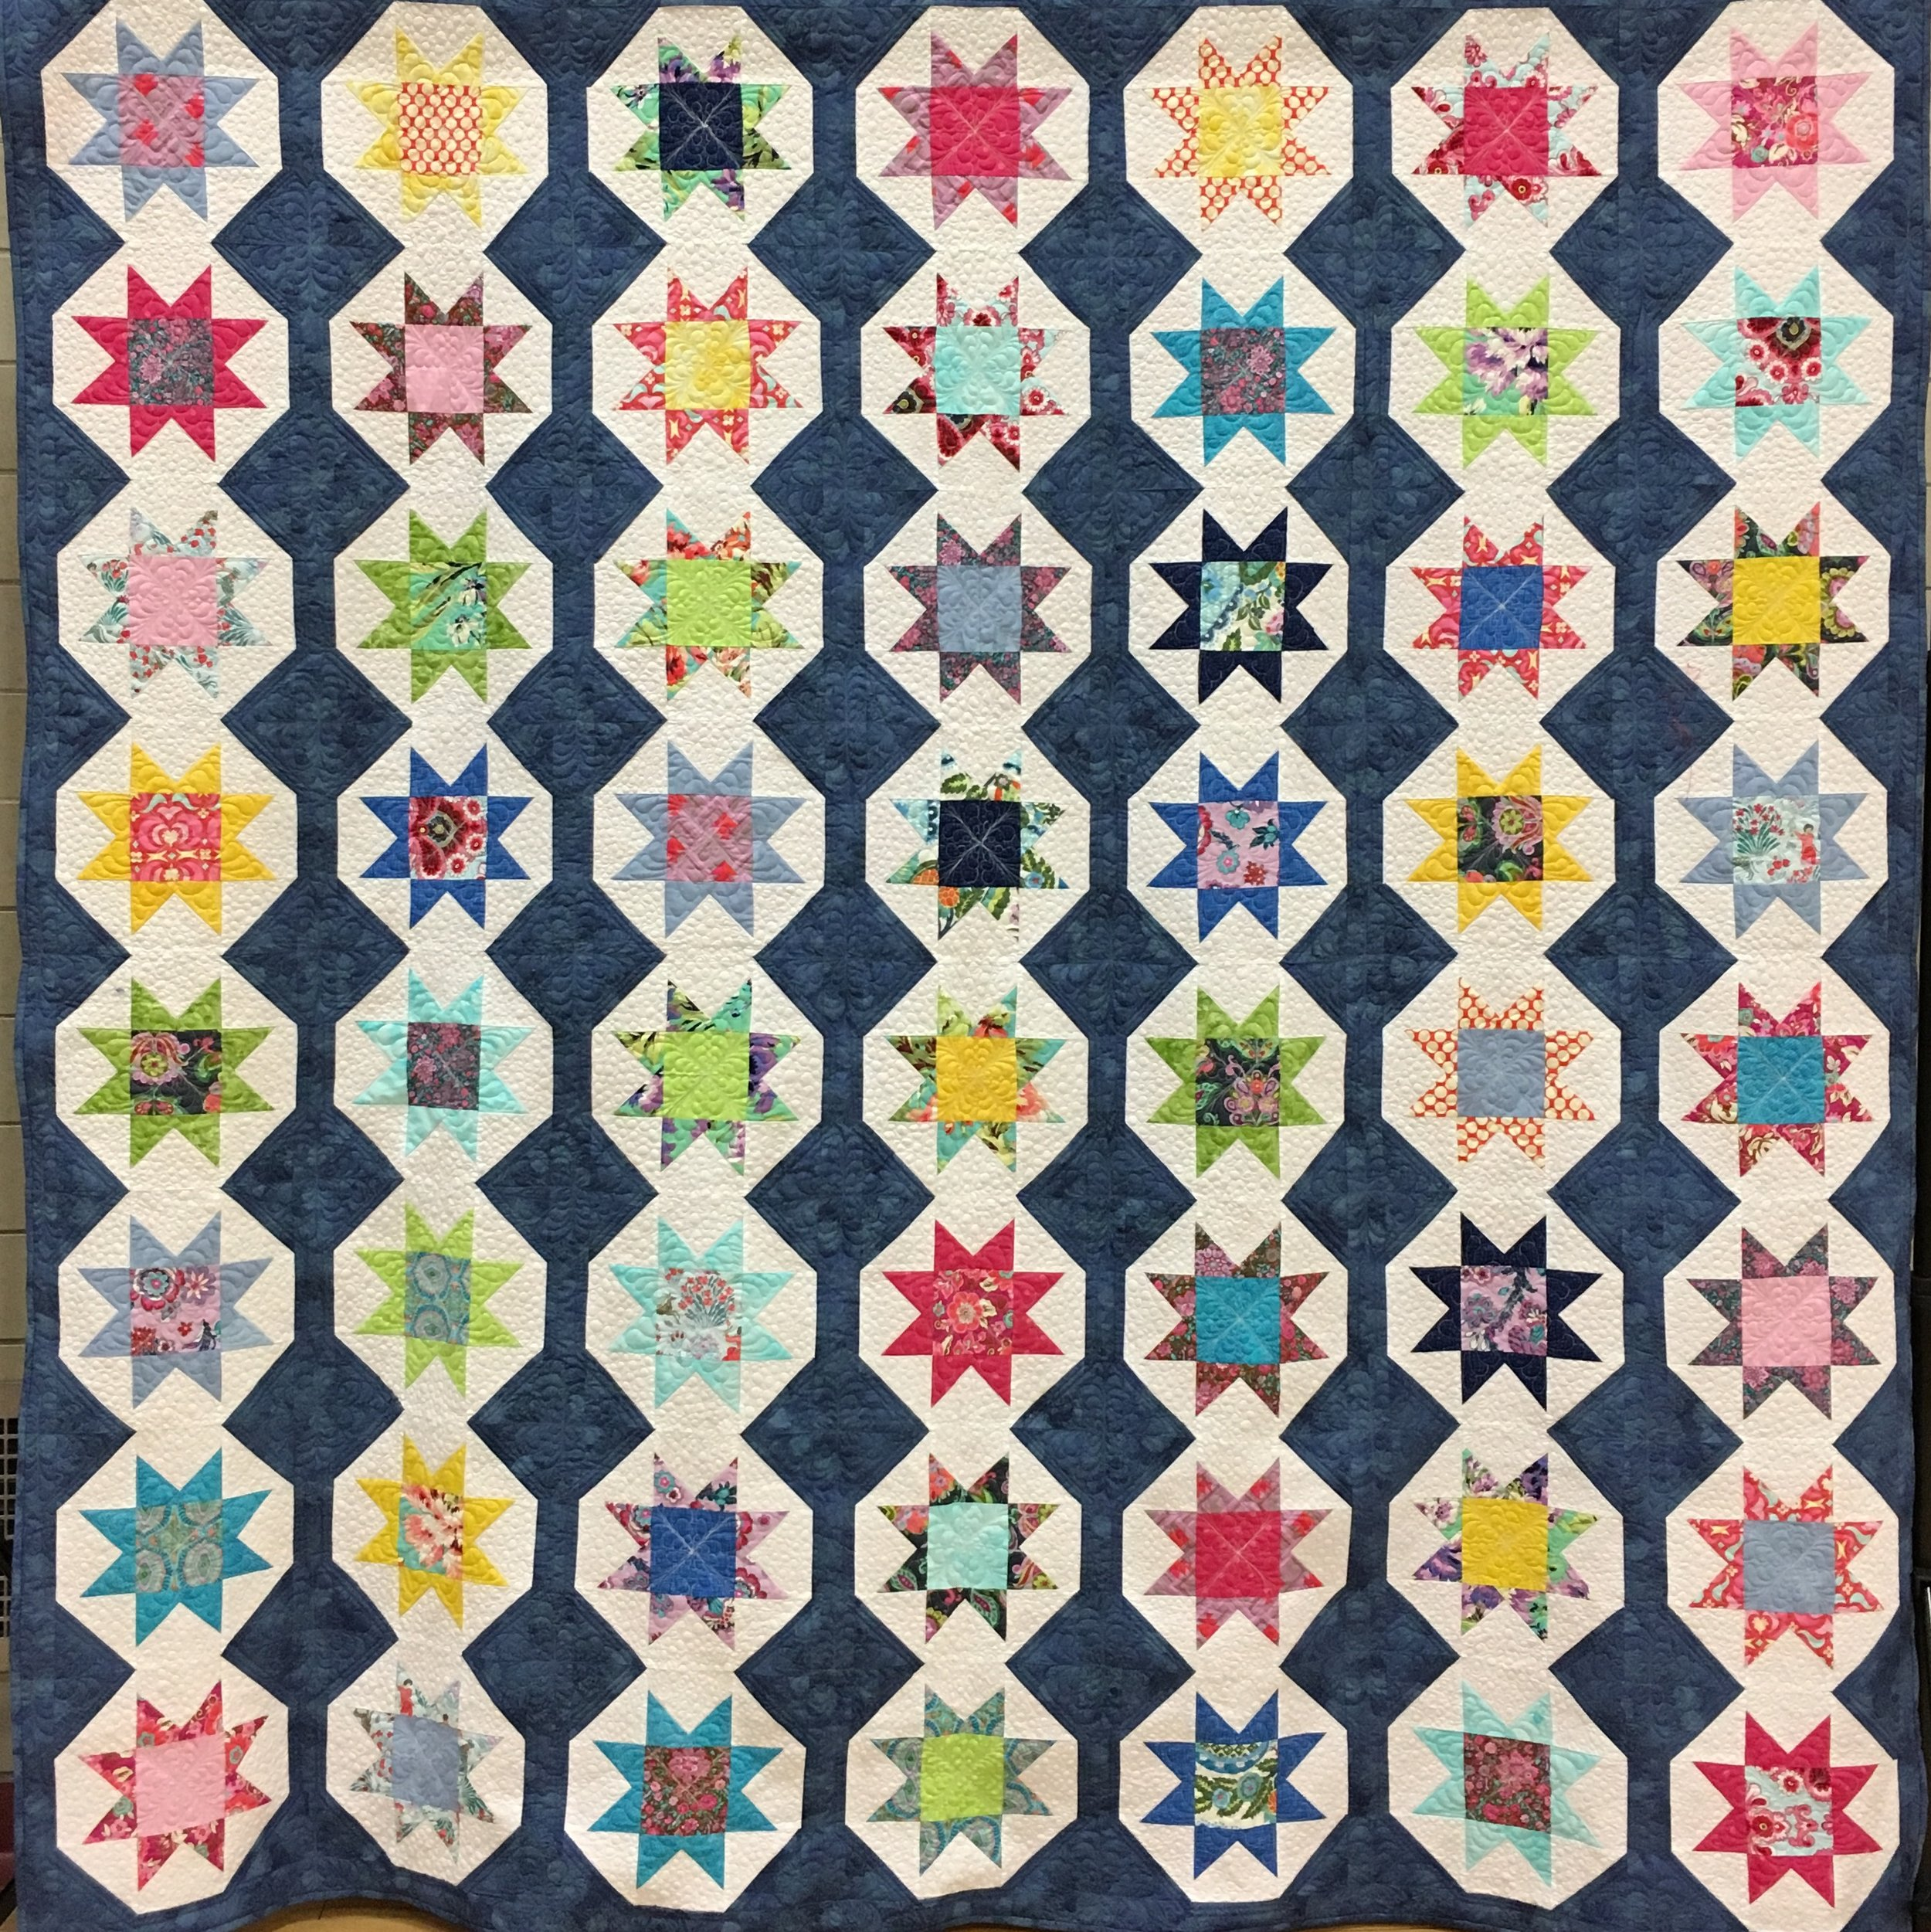 2019 Proper Bostonian Quilters Guild Raffle Quilt